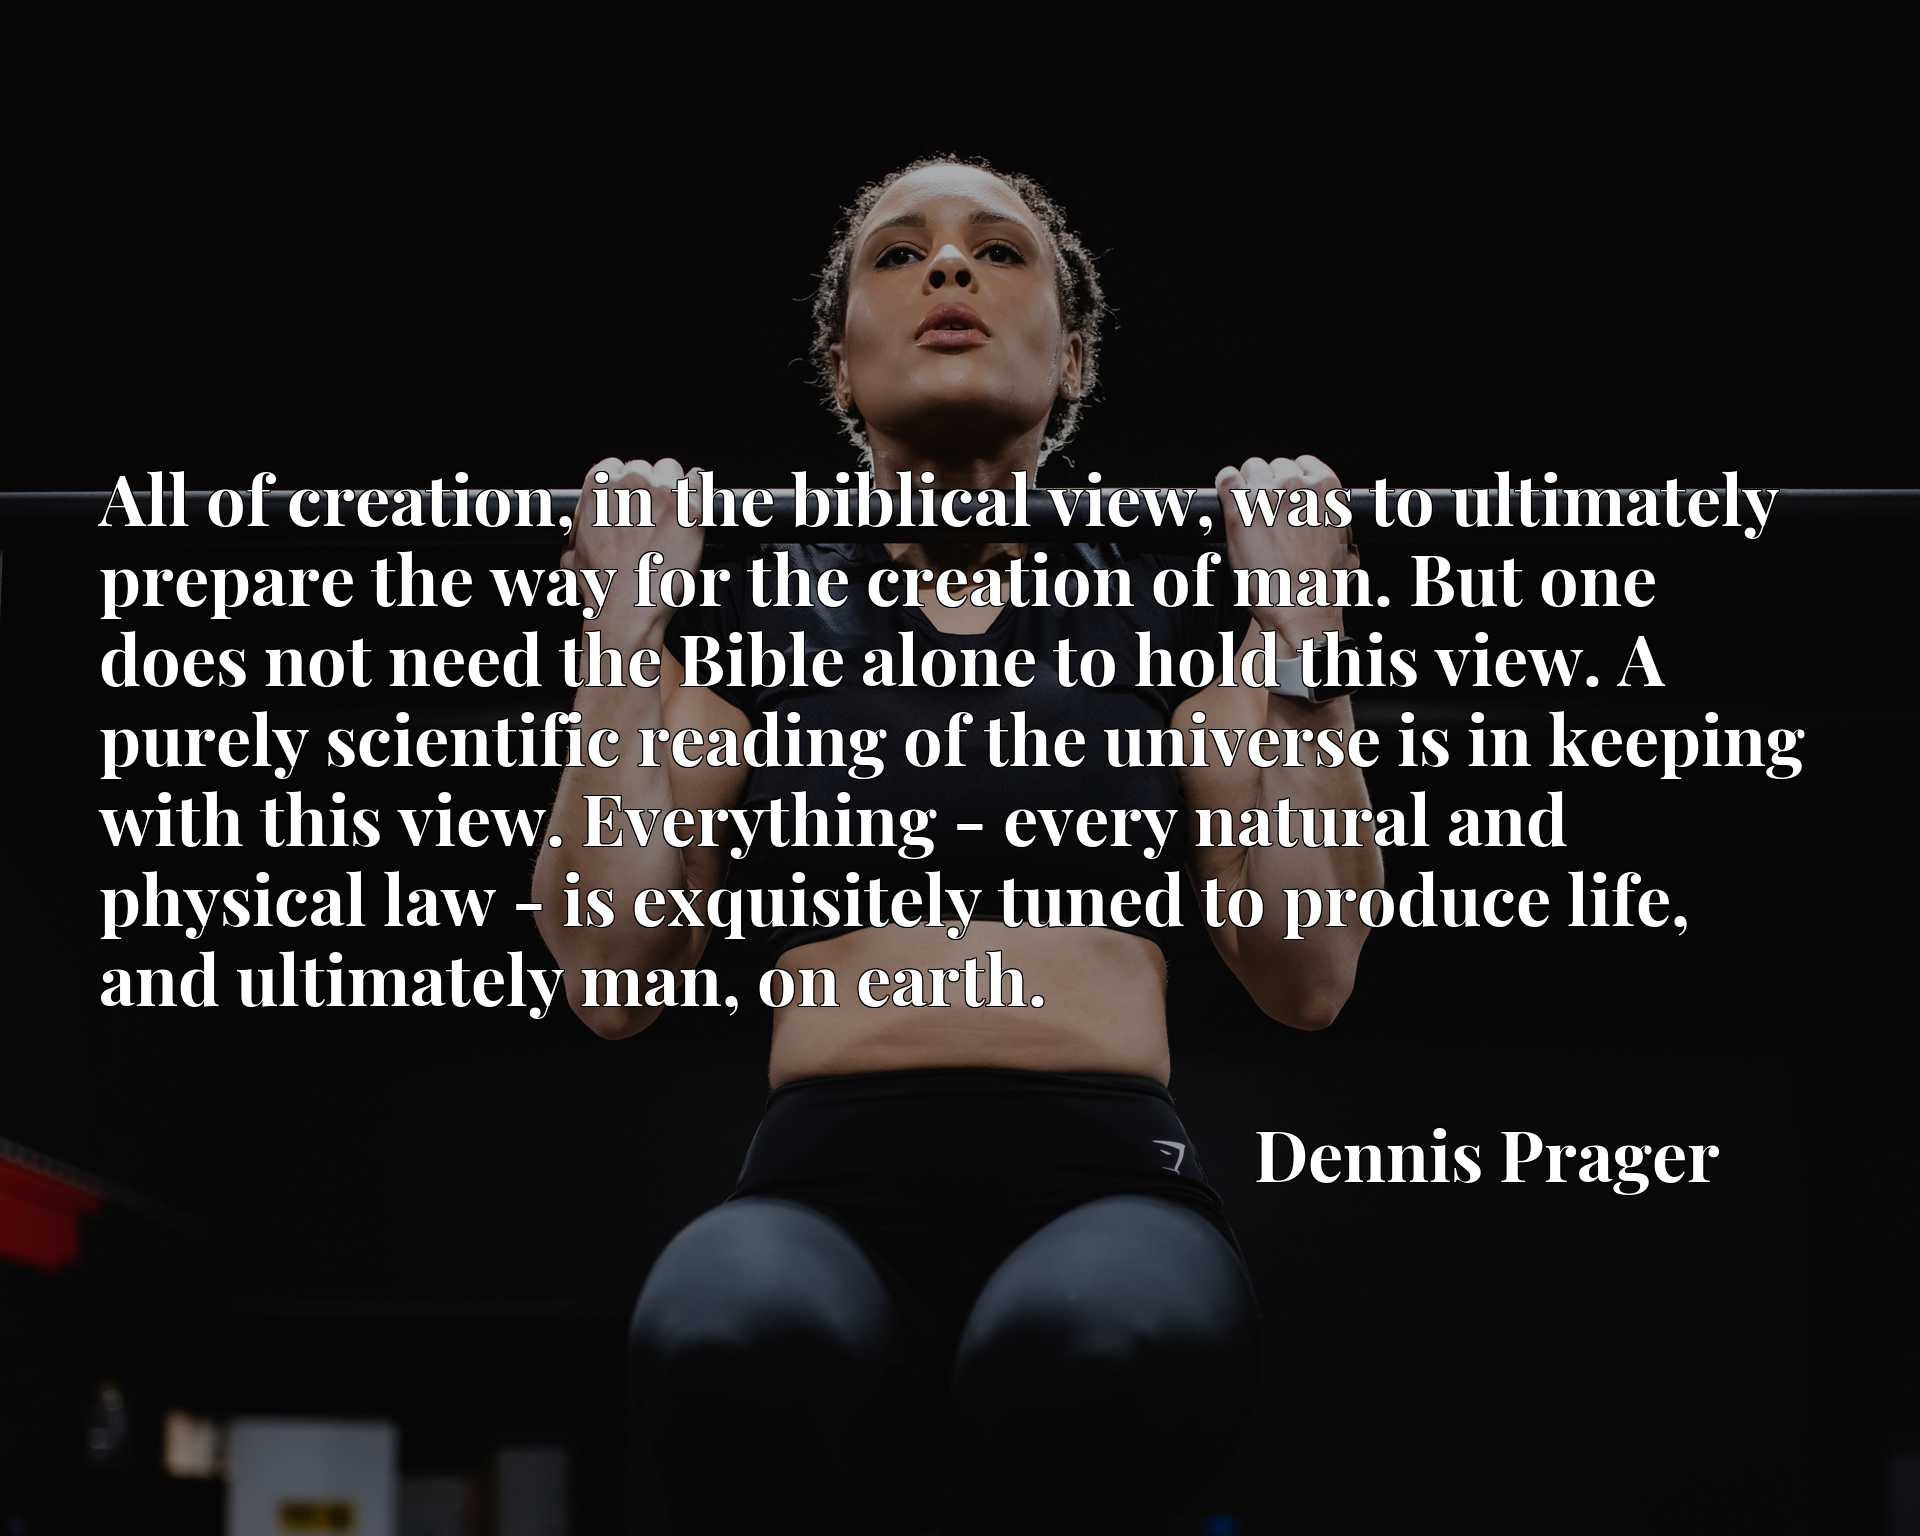 All of creation, in the biblical view, was to ultimately prepare the way for the creation of man. But one does not need the Bible alone to hold this view. A purely scientific reading of the universe is in keeping with this view. Everything - every natural and physical law - is exquisitely tuned to produce life, and ultimately man, on earth.